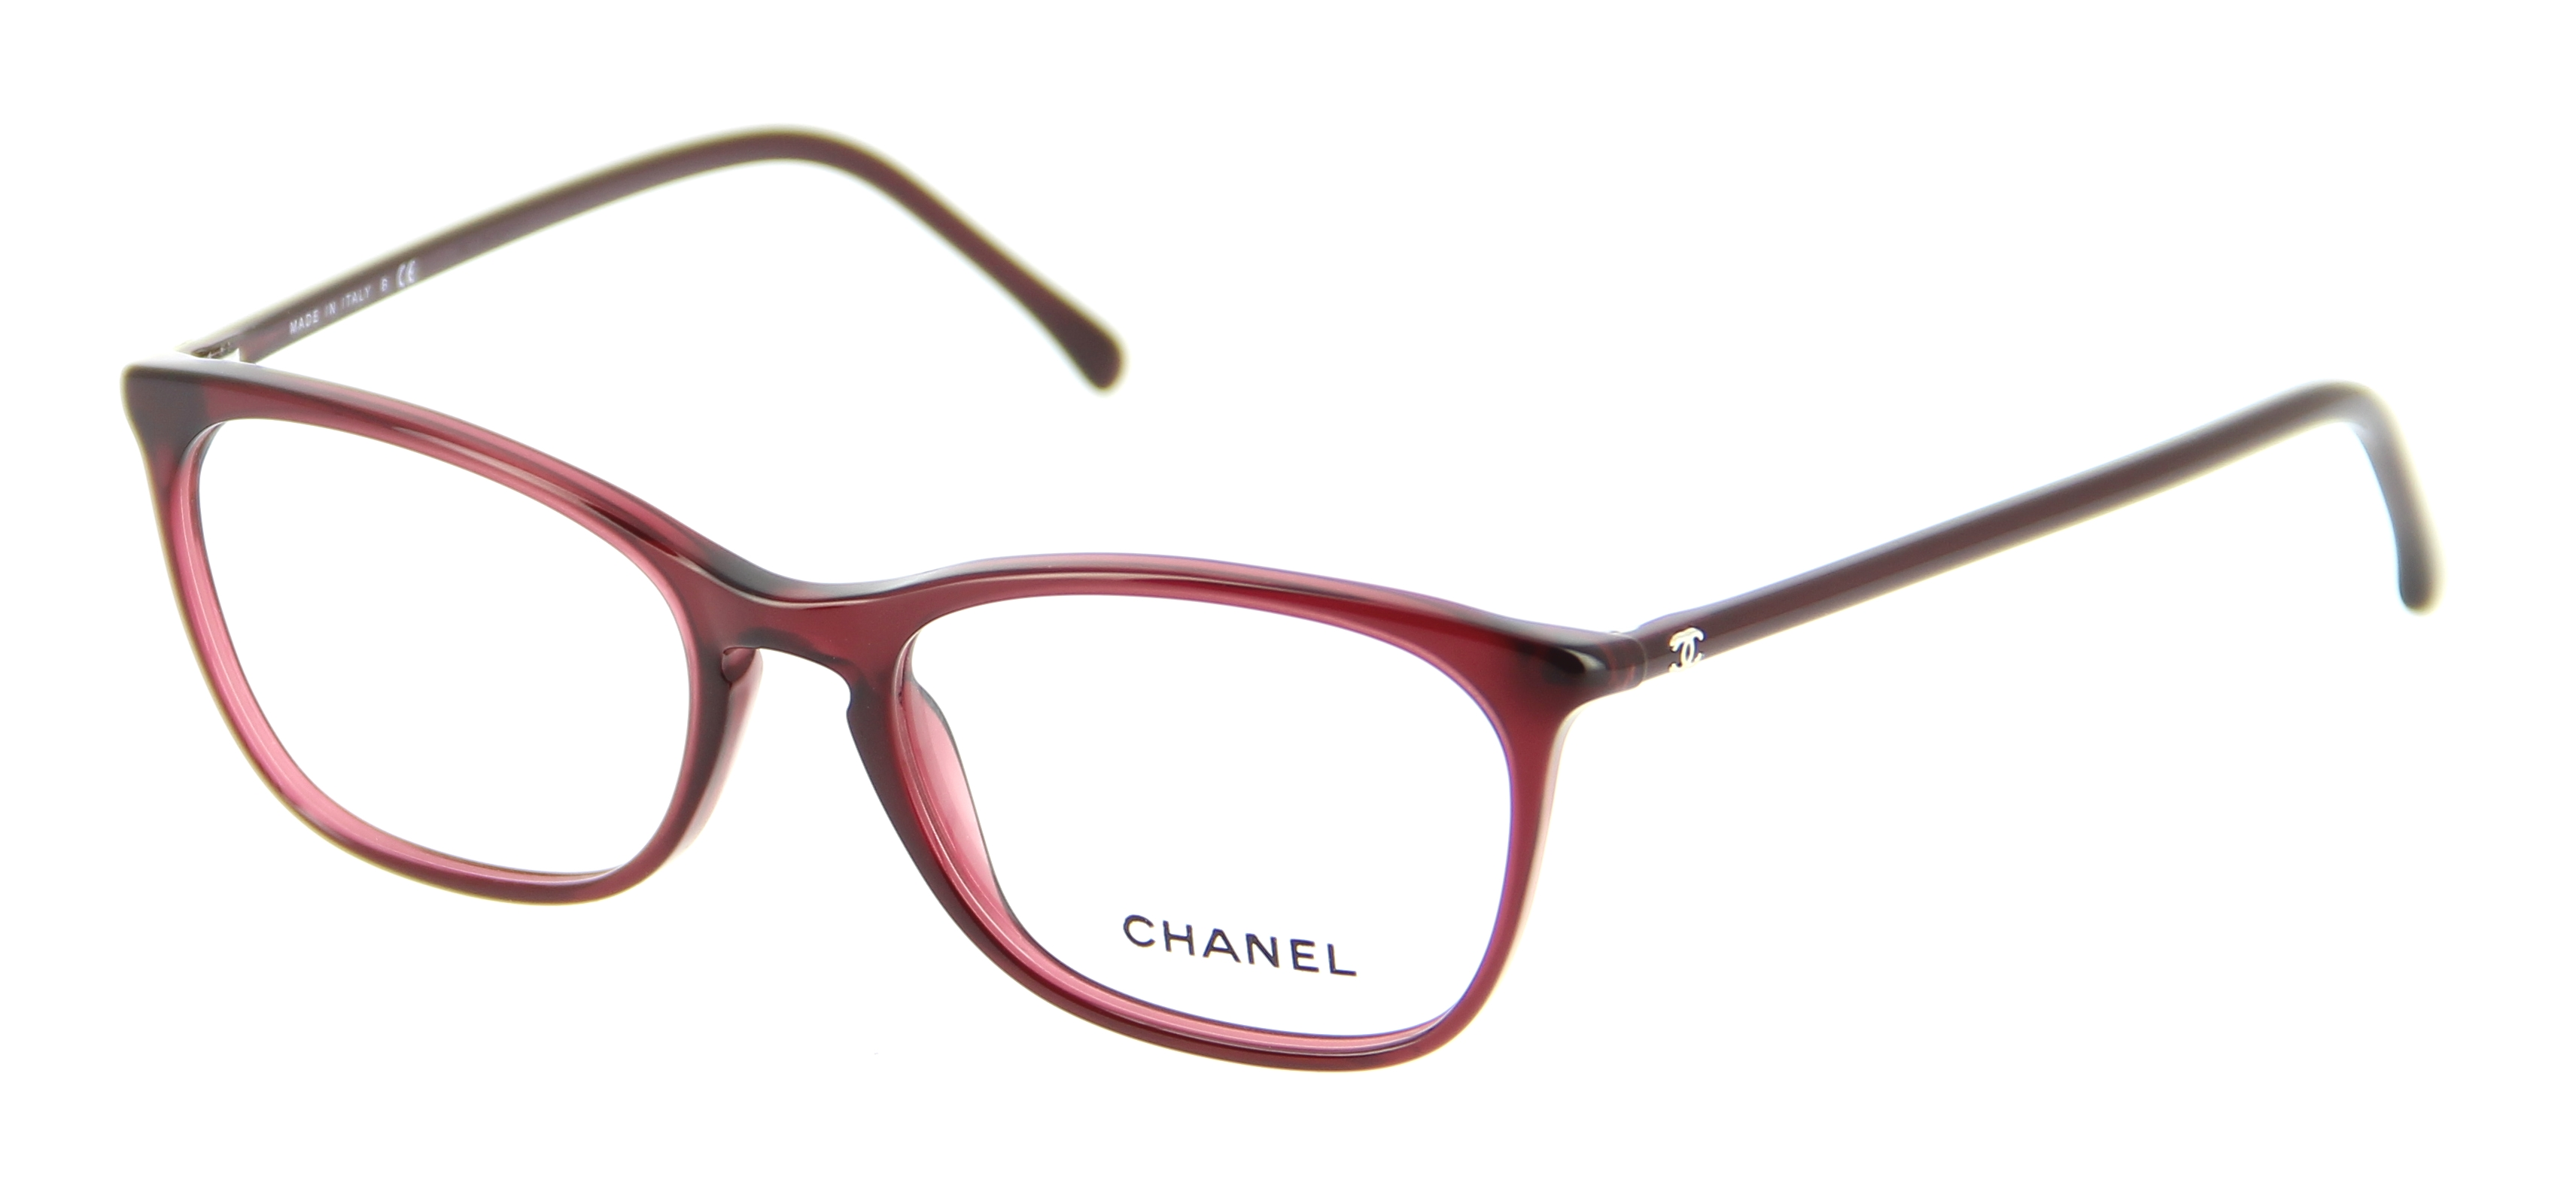 5b7cf3dac9595d Monture Lunette De Vue Femme Chanel   City of Kenmore, Washington